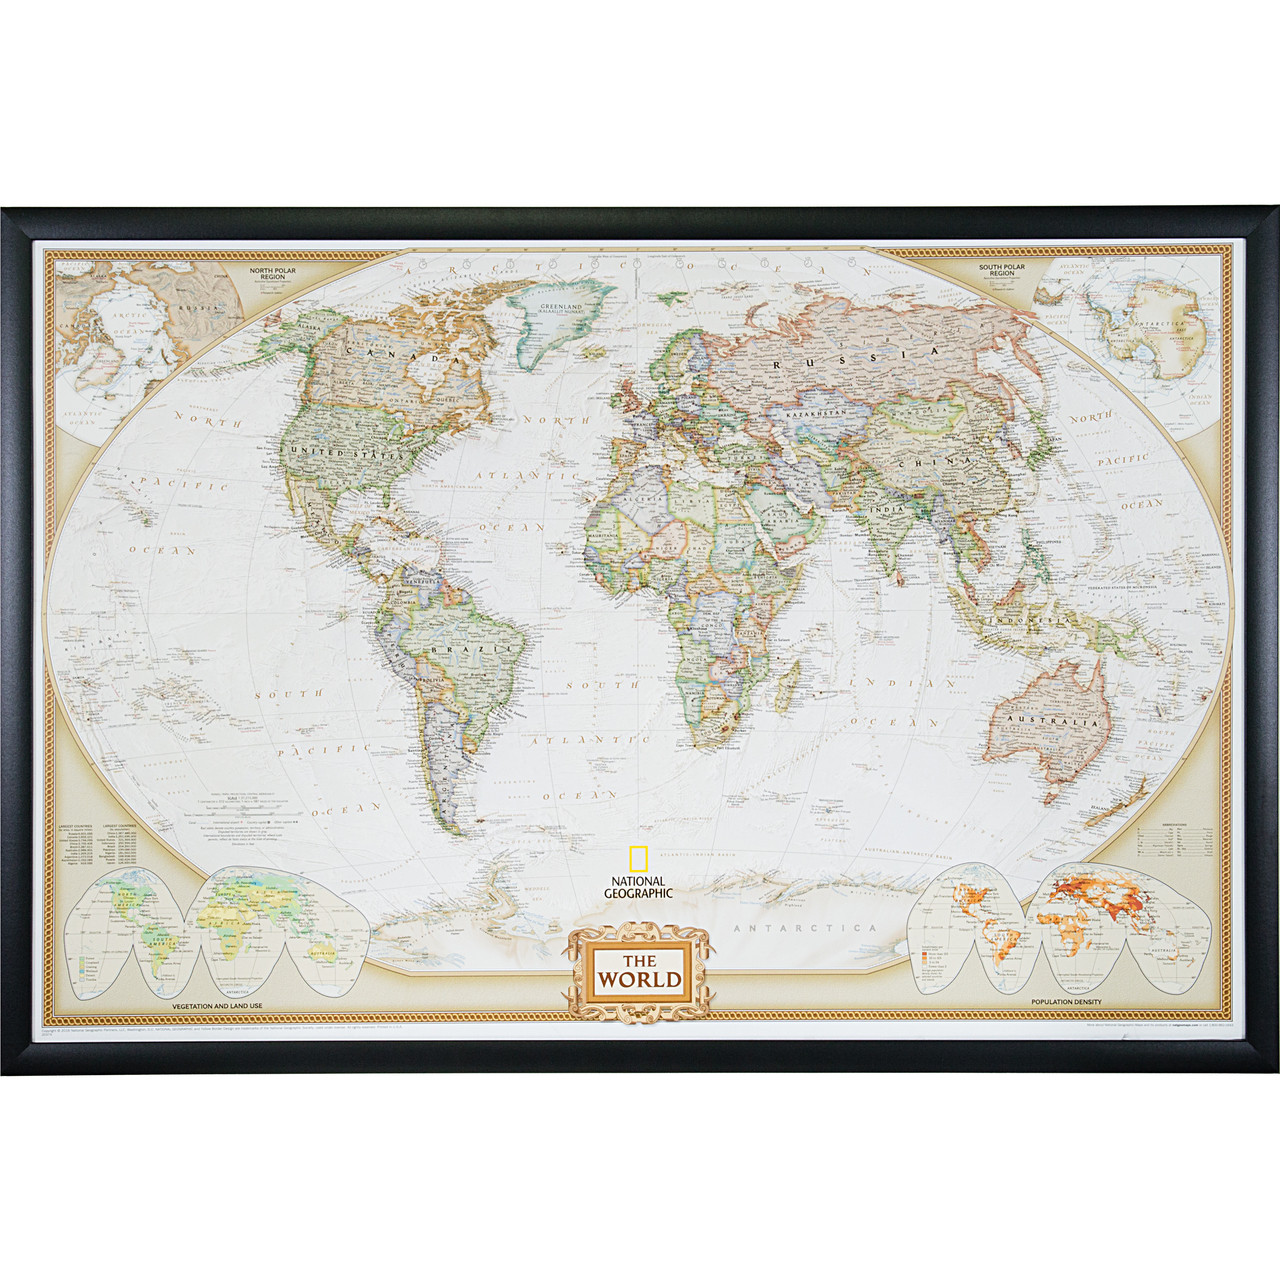 Wayfarer Executive World Push Pin Travel Map - Craig Frames